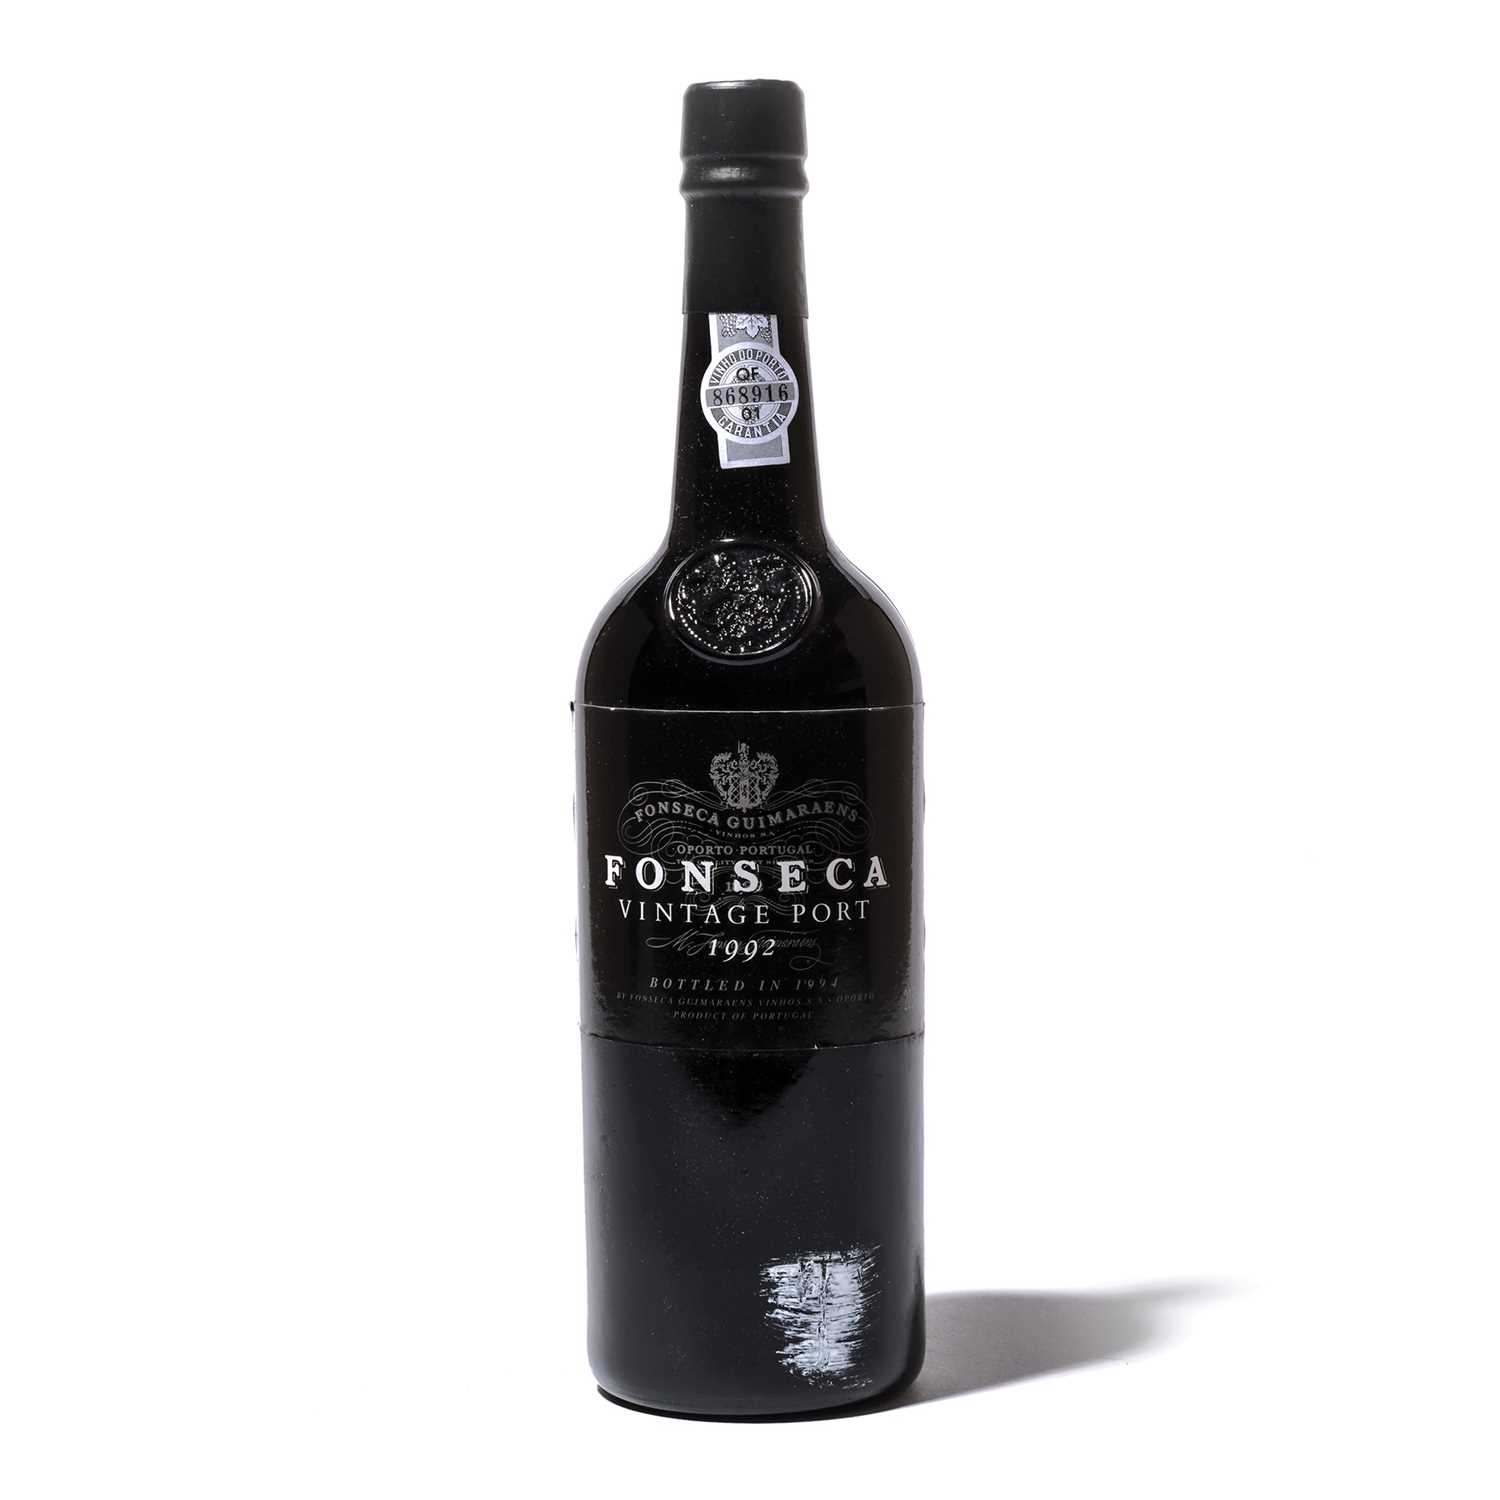 Lot 12-12 bottles 1992 Fonseca